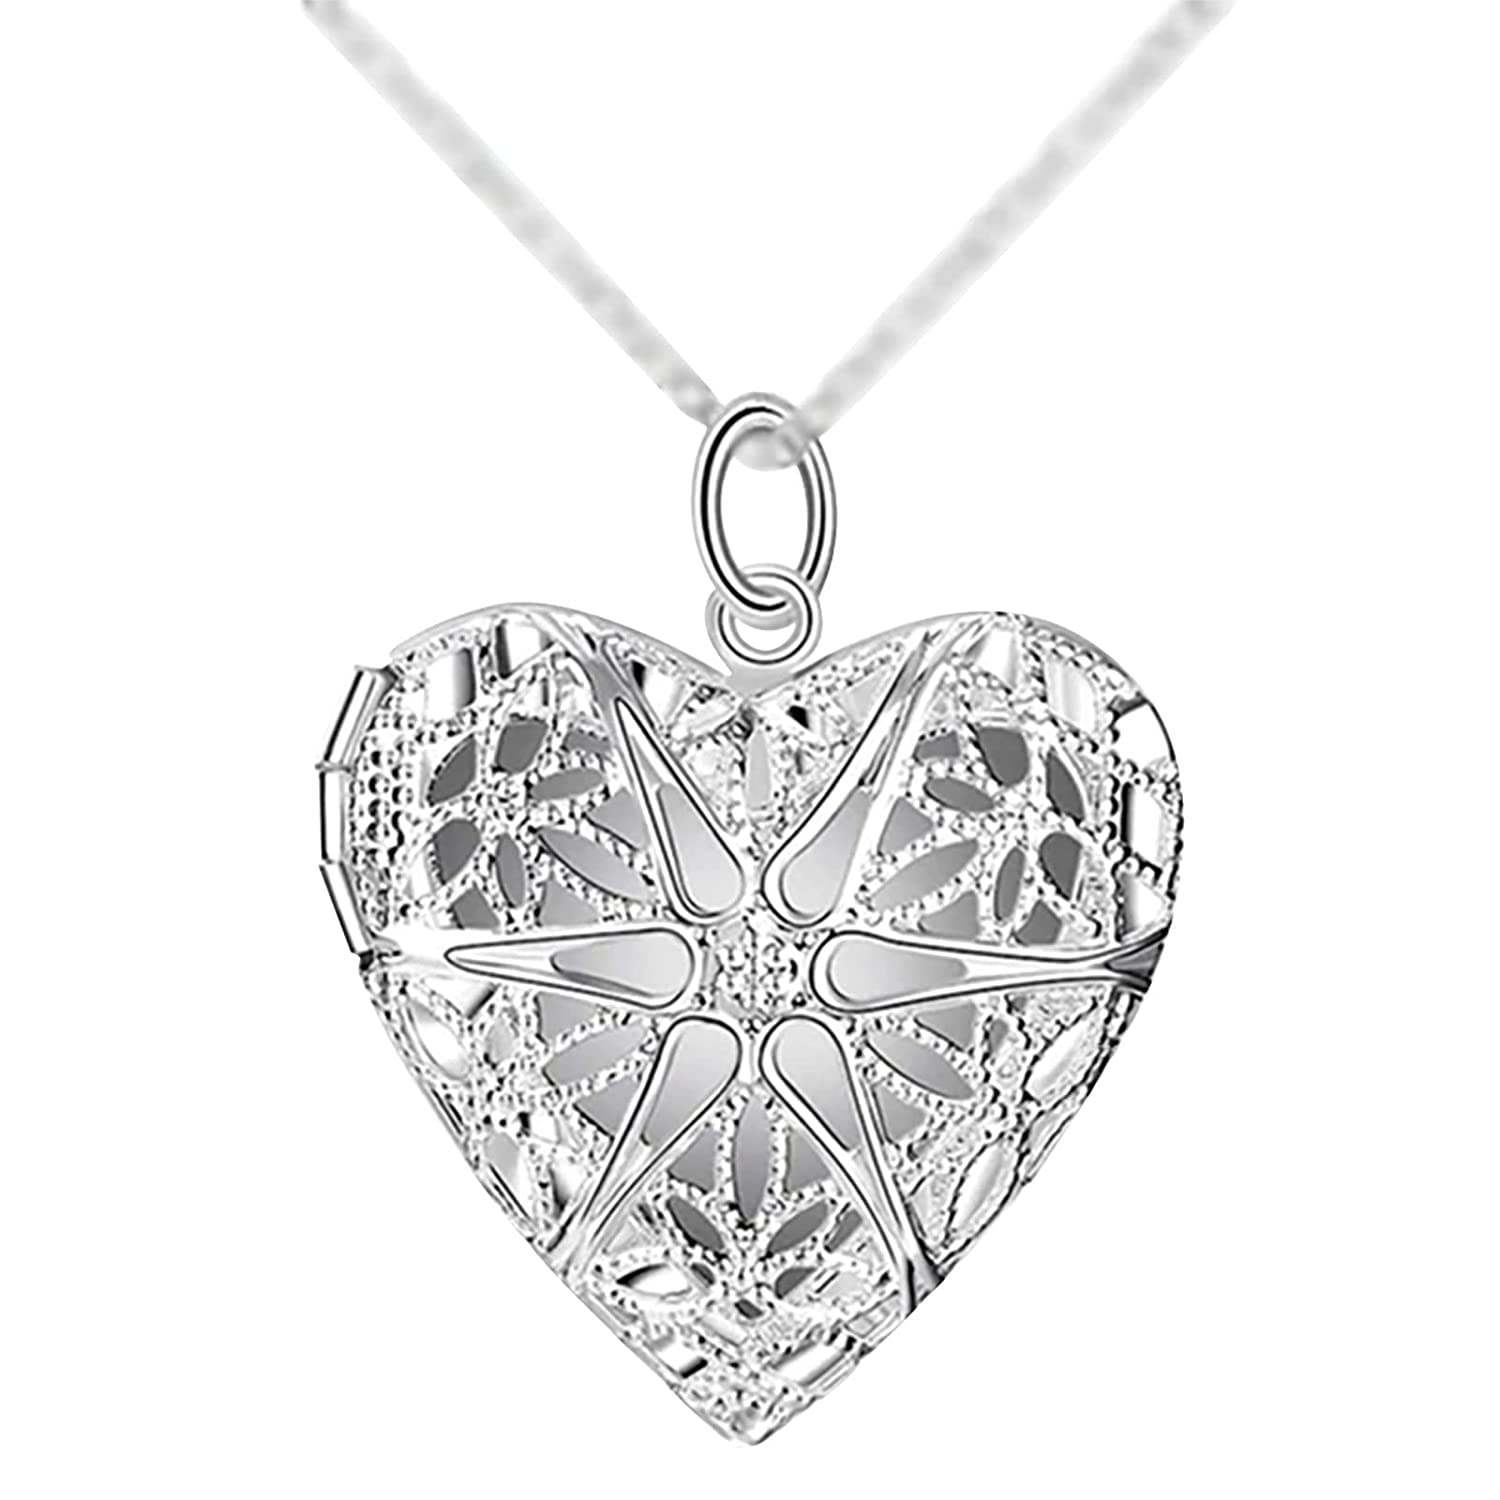 Dalang Women Heart Necklace Gift Birthday Our shop most popular : Sweaters Discount is also underway